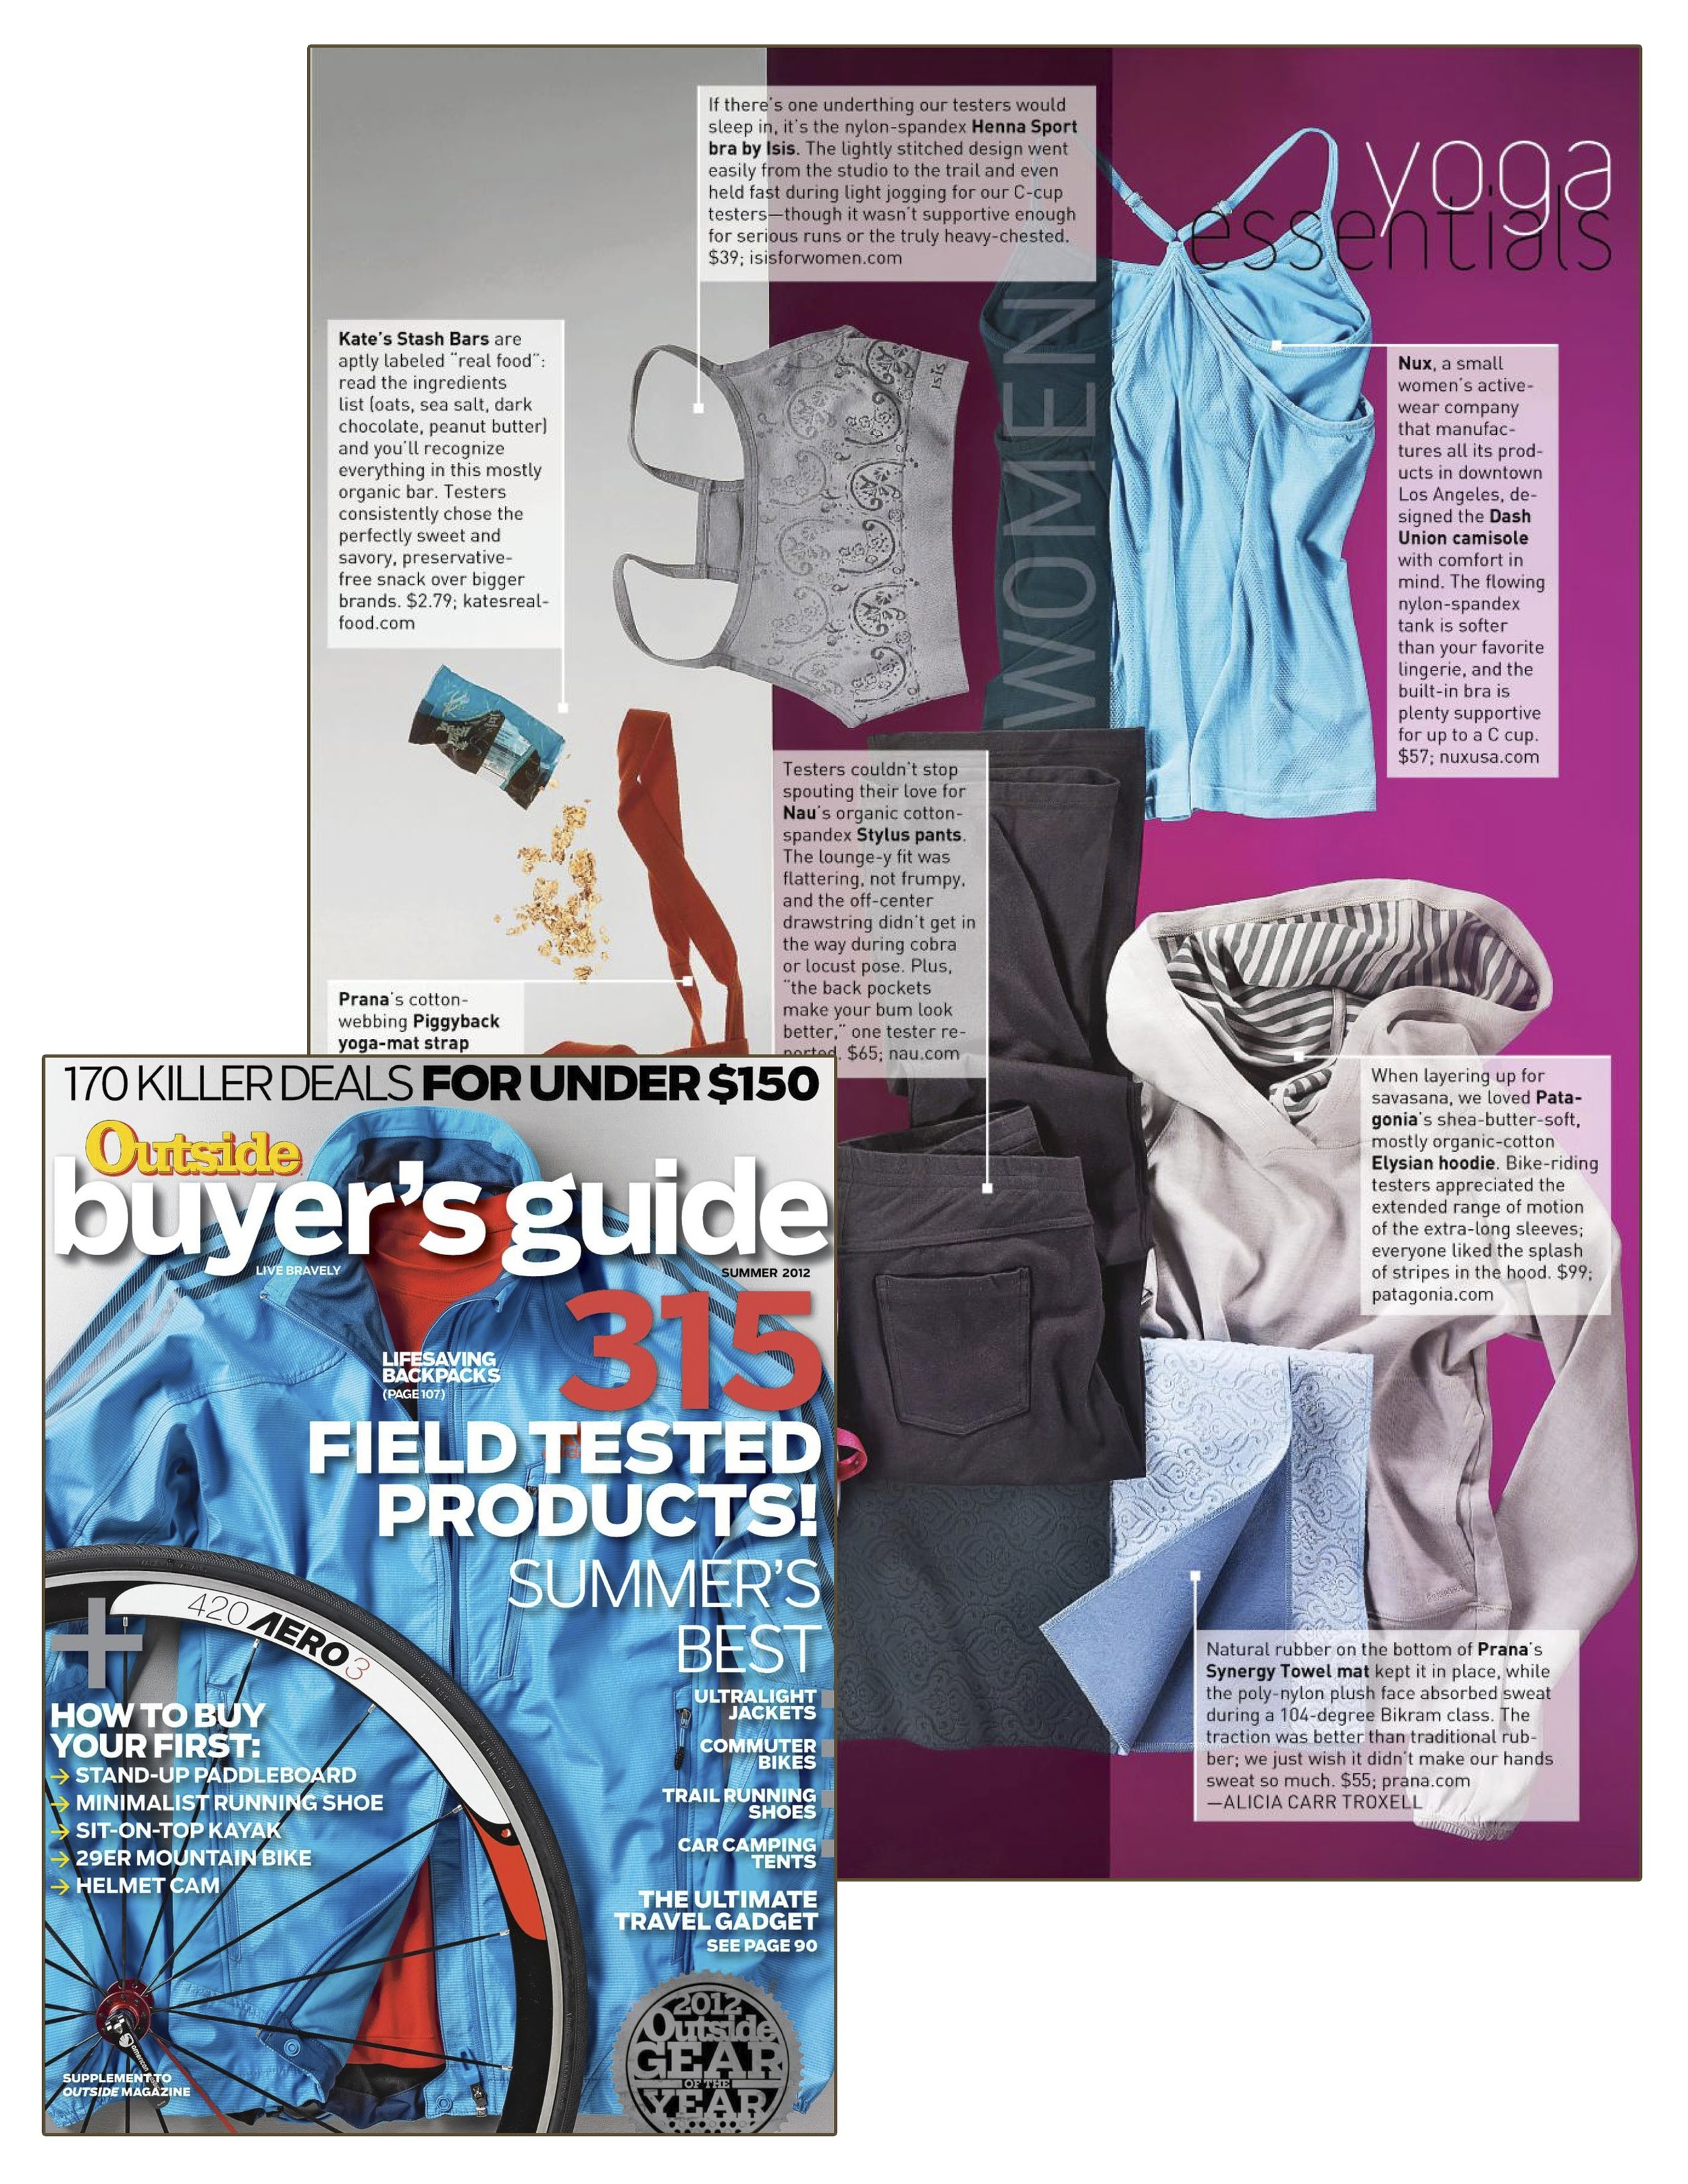 Summer 2012 - Outside Magazine Buyer's Guide - NUX.jpg